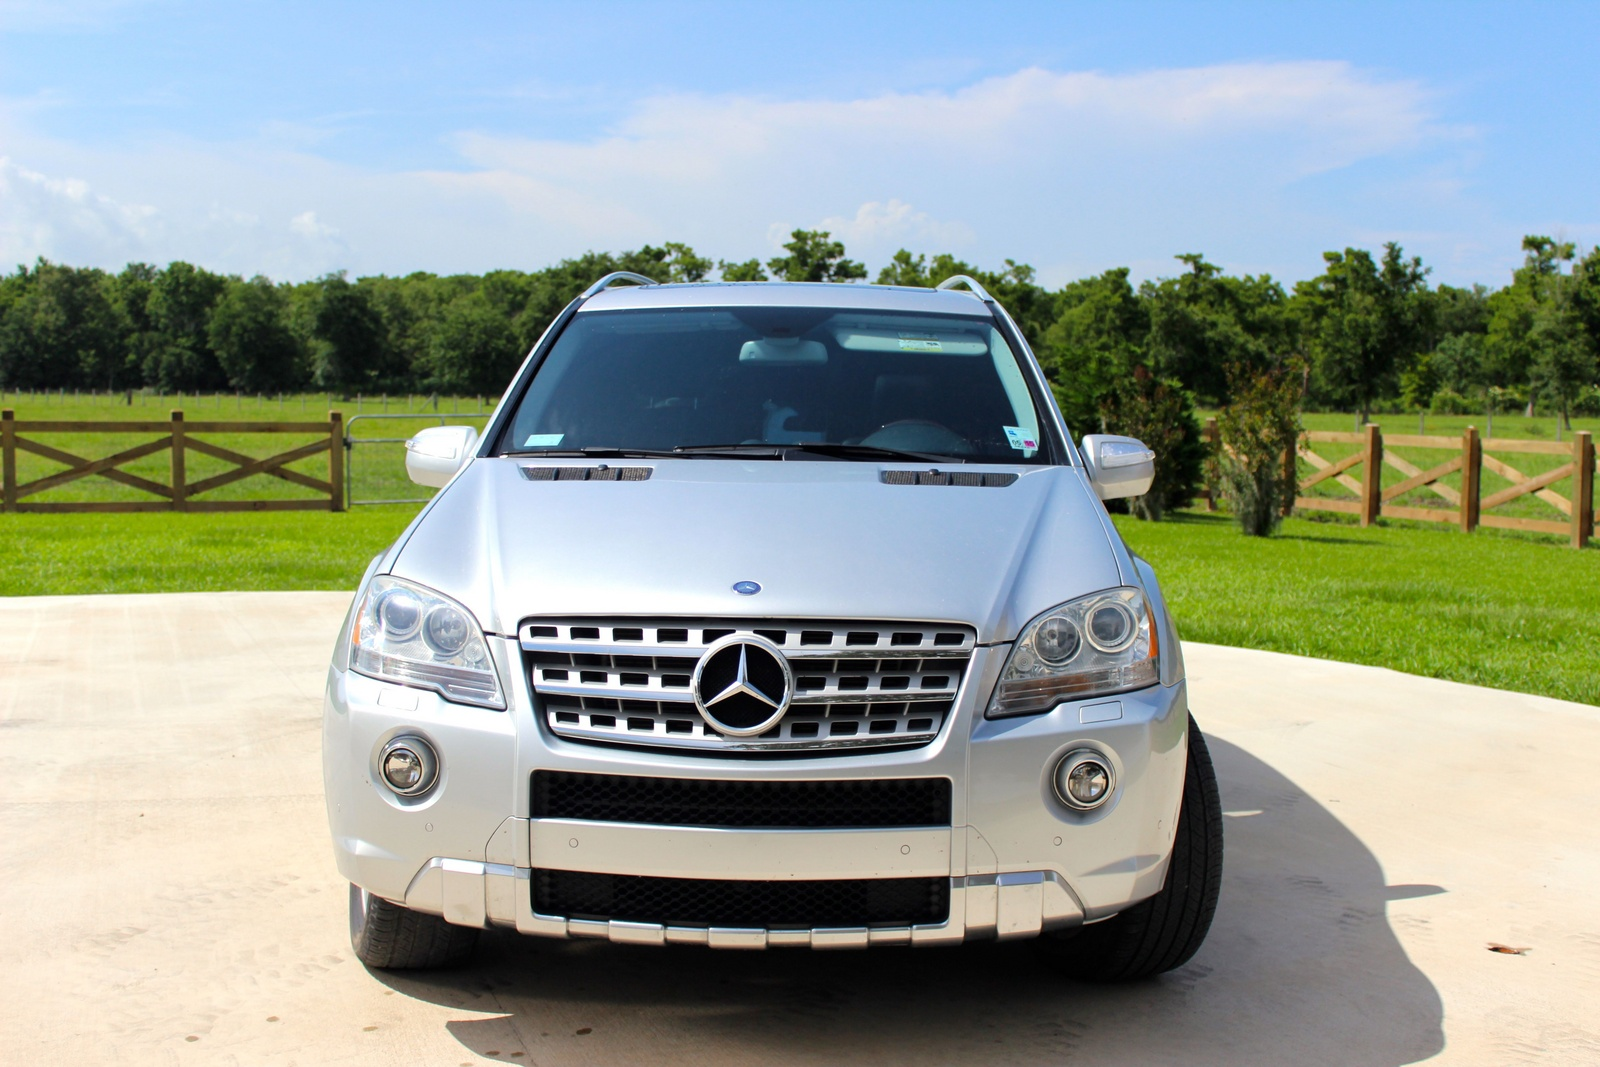 2009 mercedes benz m class pictures cargurus for Mercedes benz ml550 price